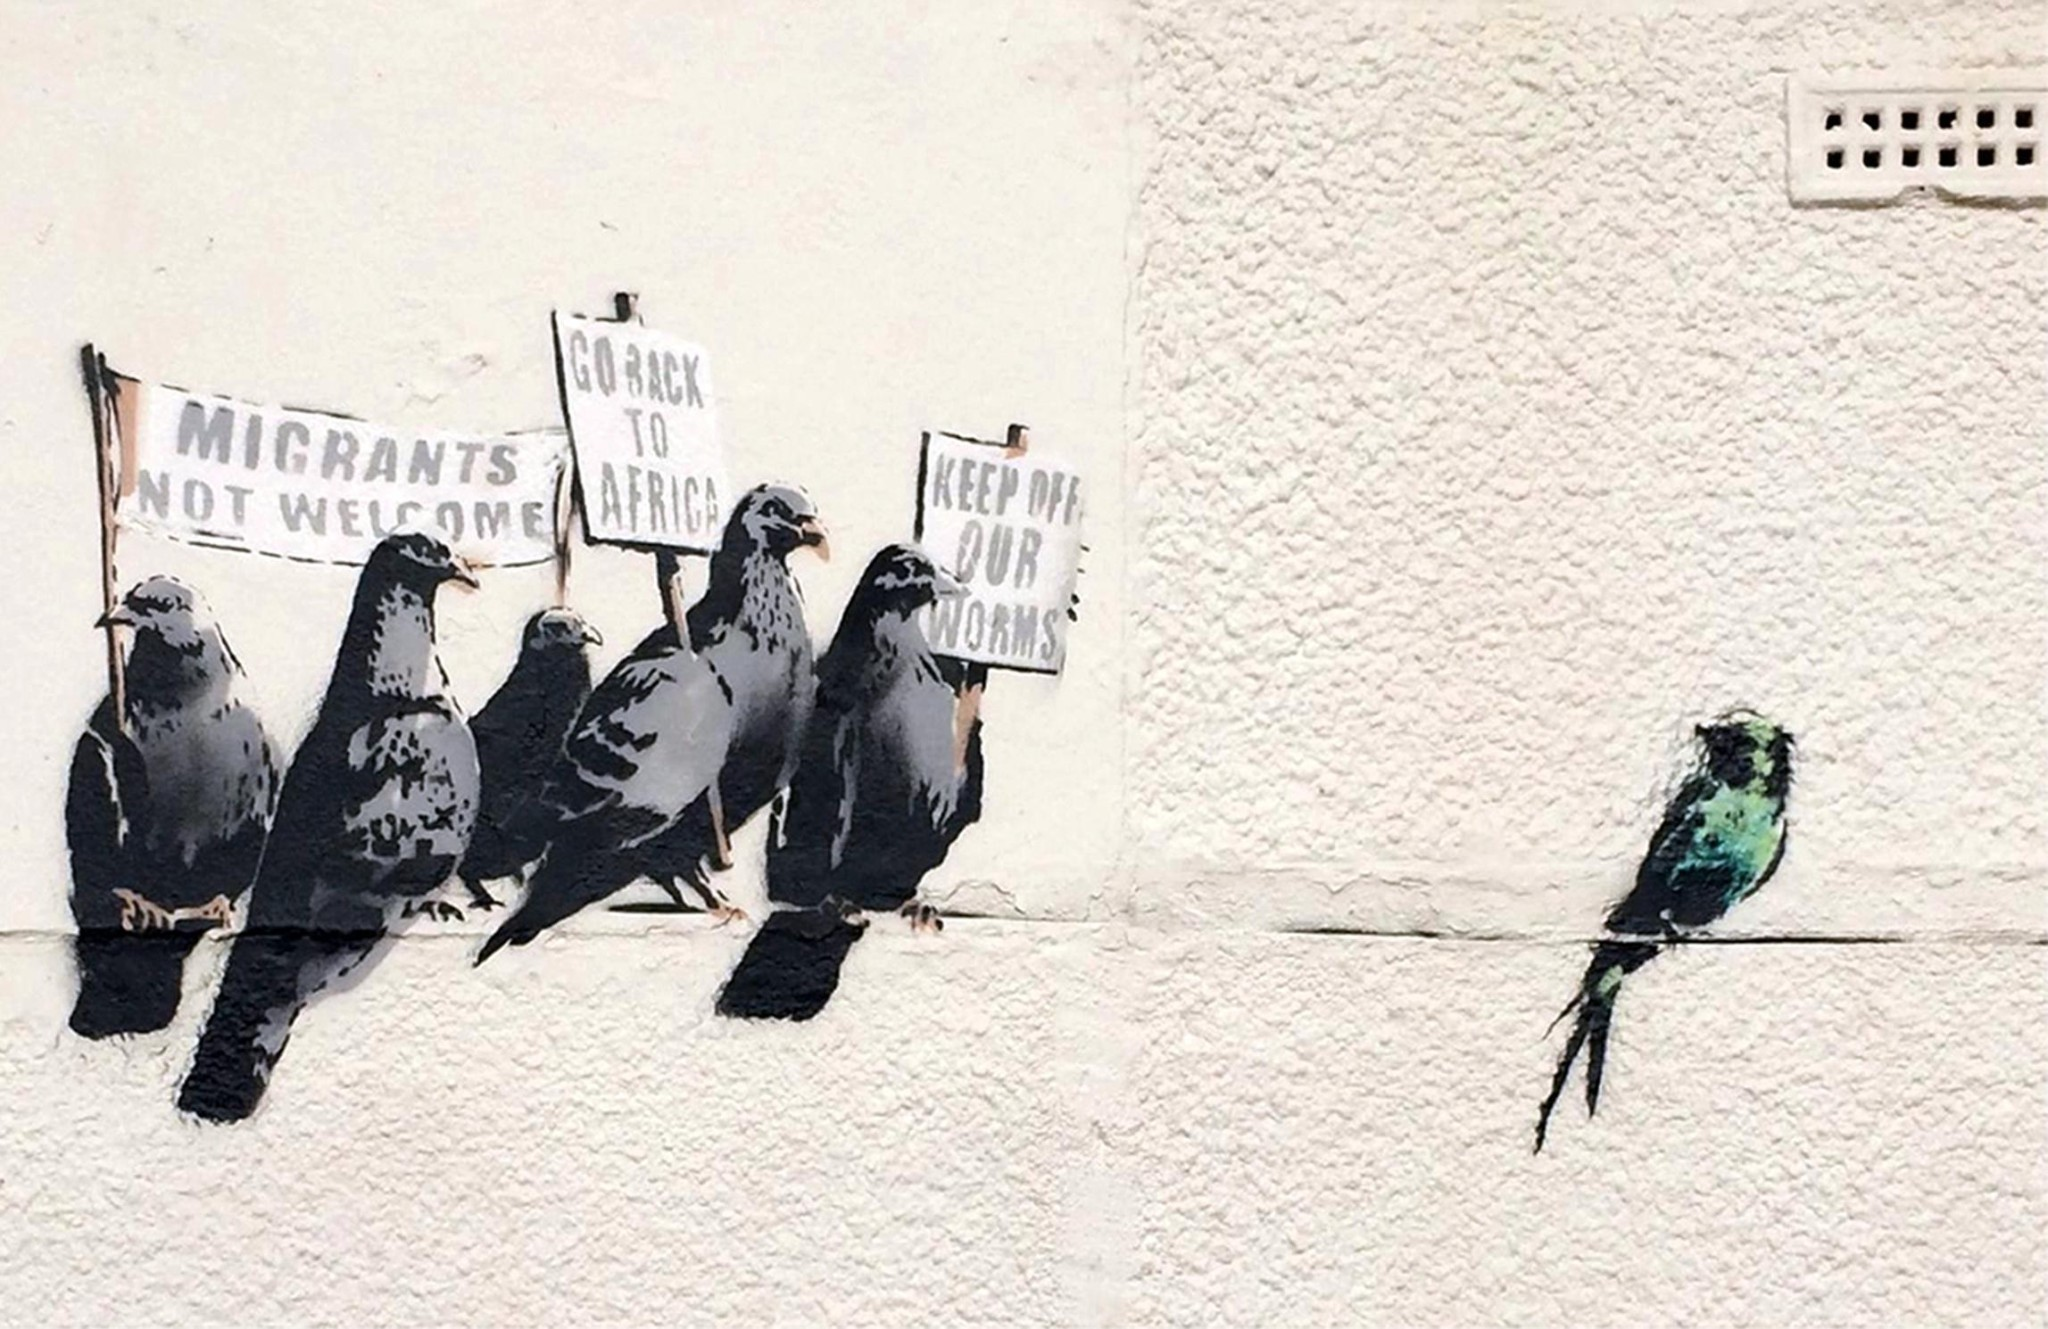 Melbourne Bansky exhibition a 'major coup' for city, says mayor